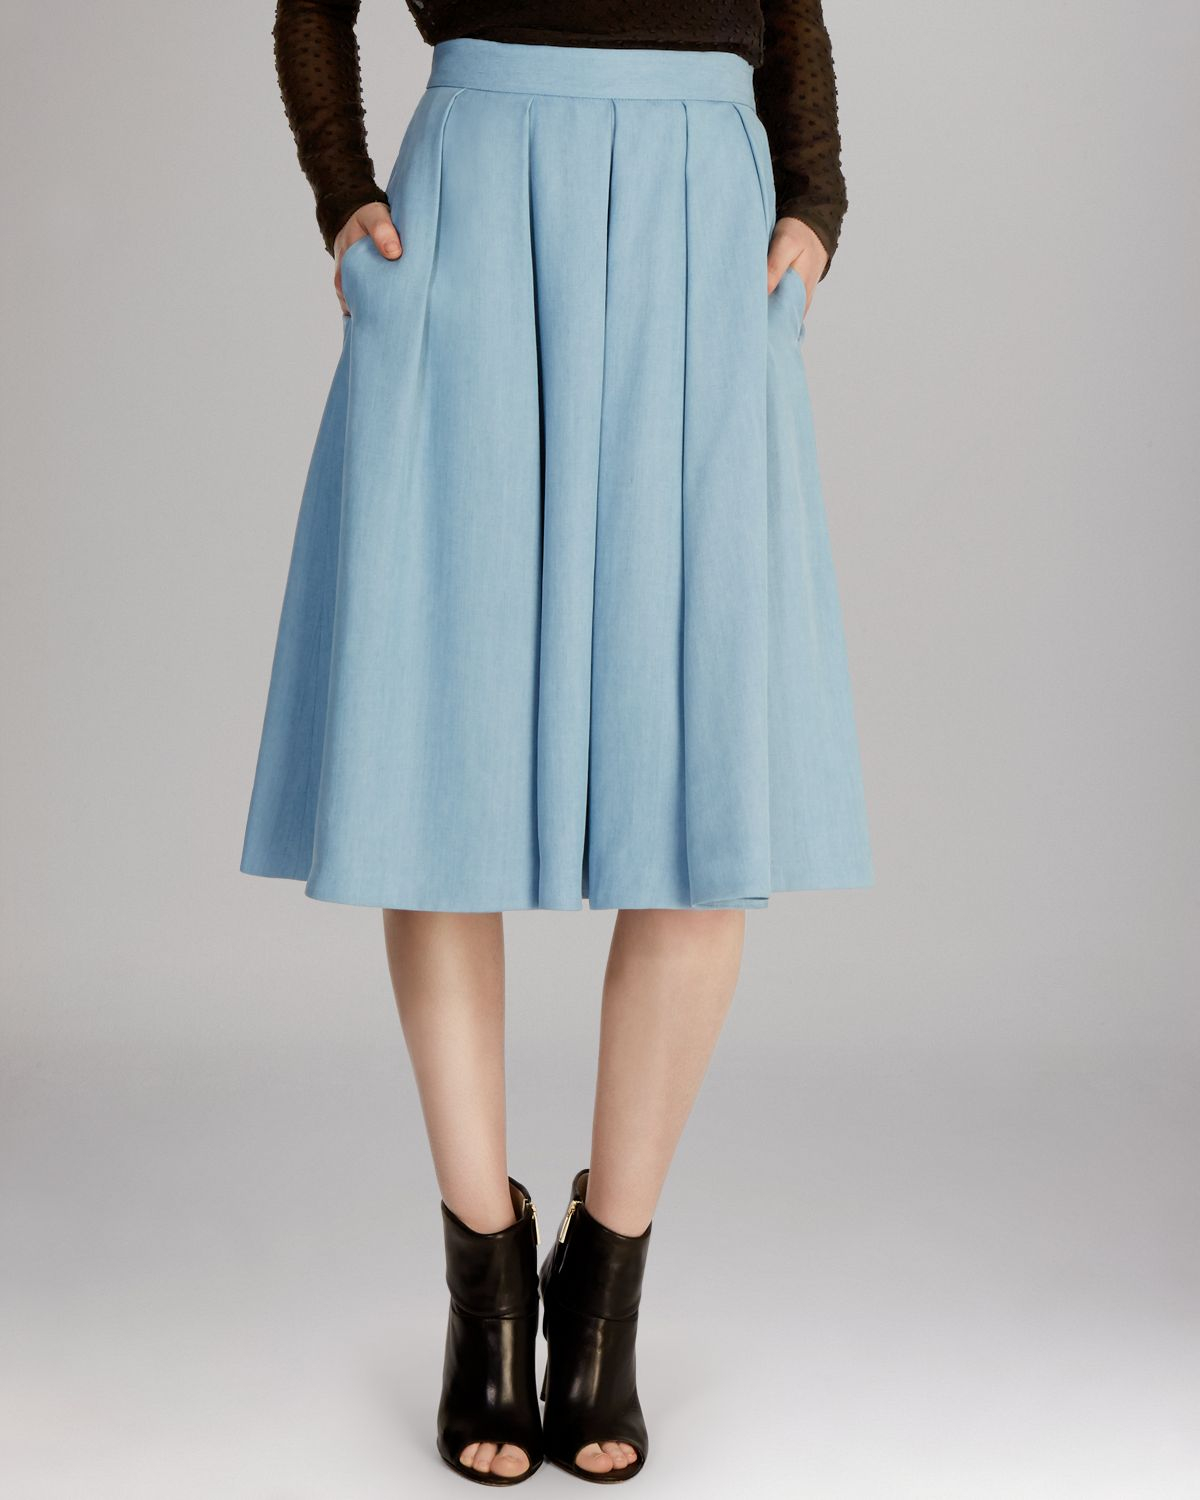 Karen millen Midi Skirt in Blue | Lyst